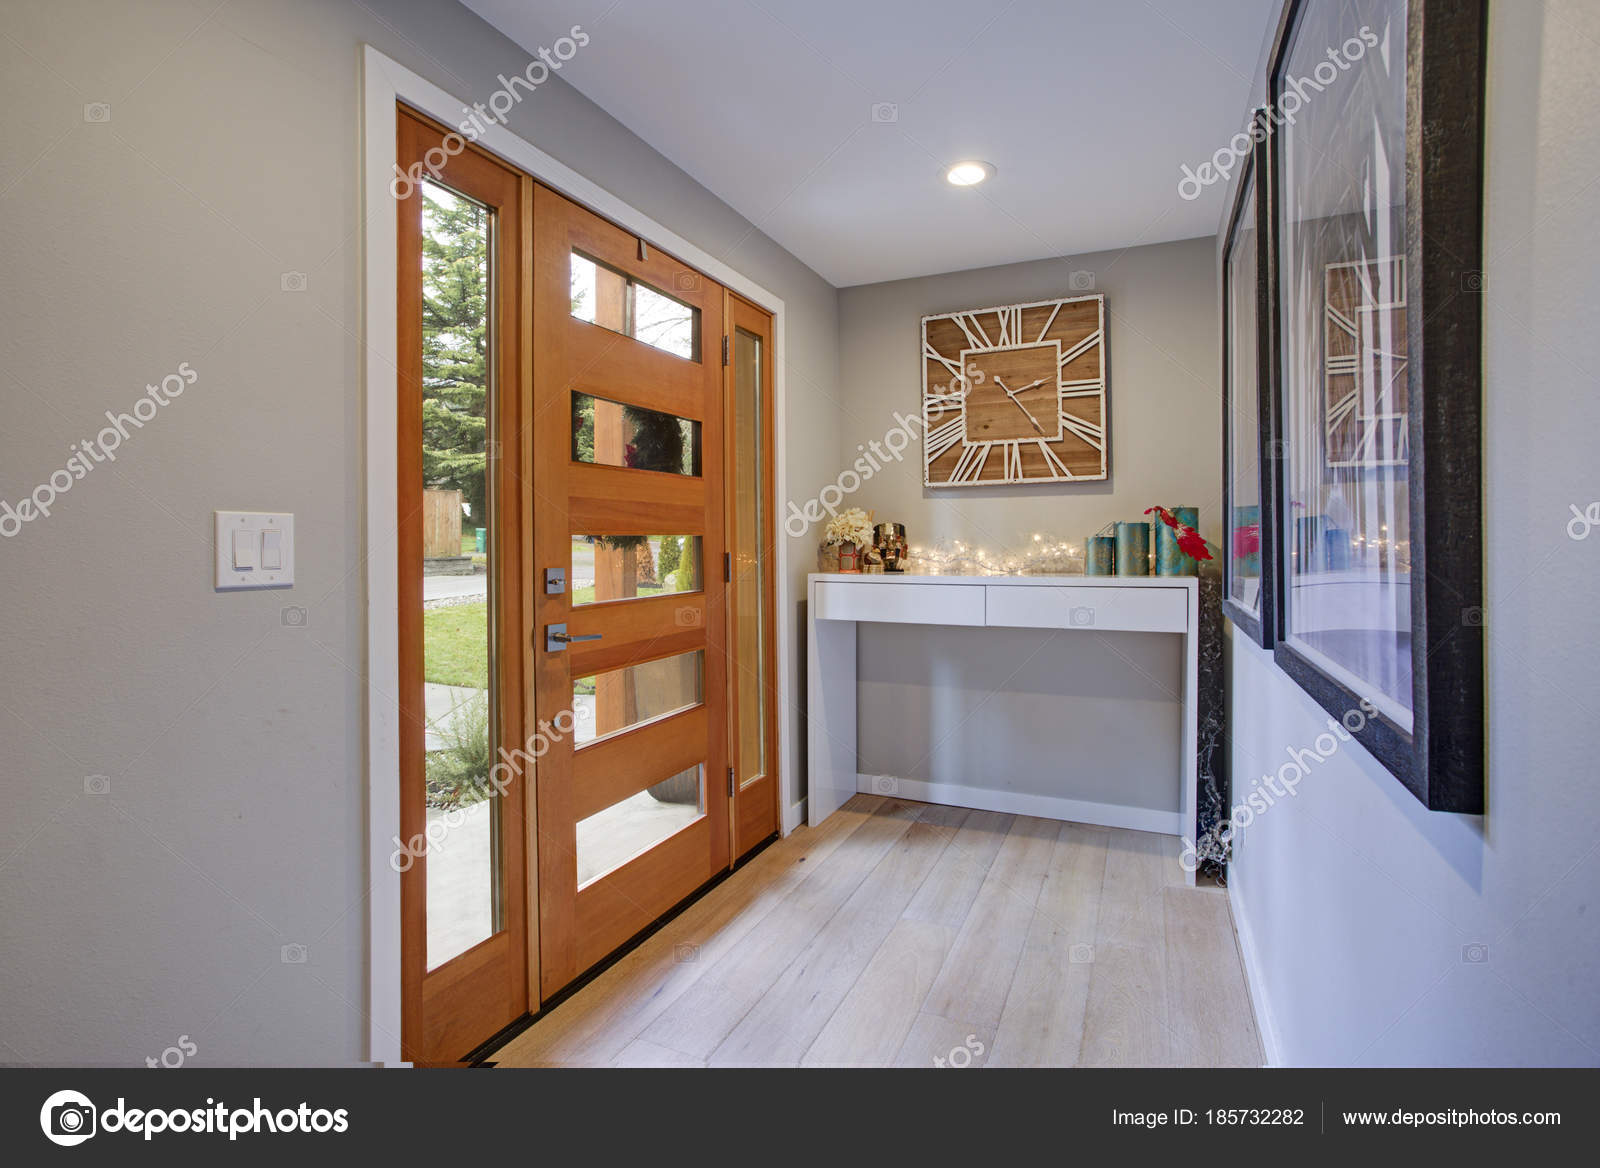 Konsolentisch Porta Chic Foyer With A Glass Panel Front Door And White Console